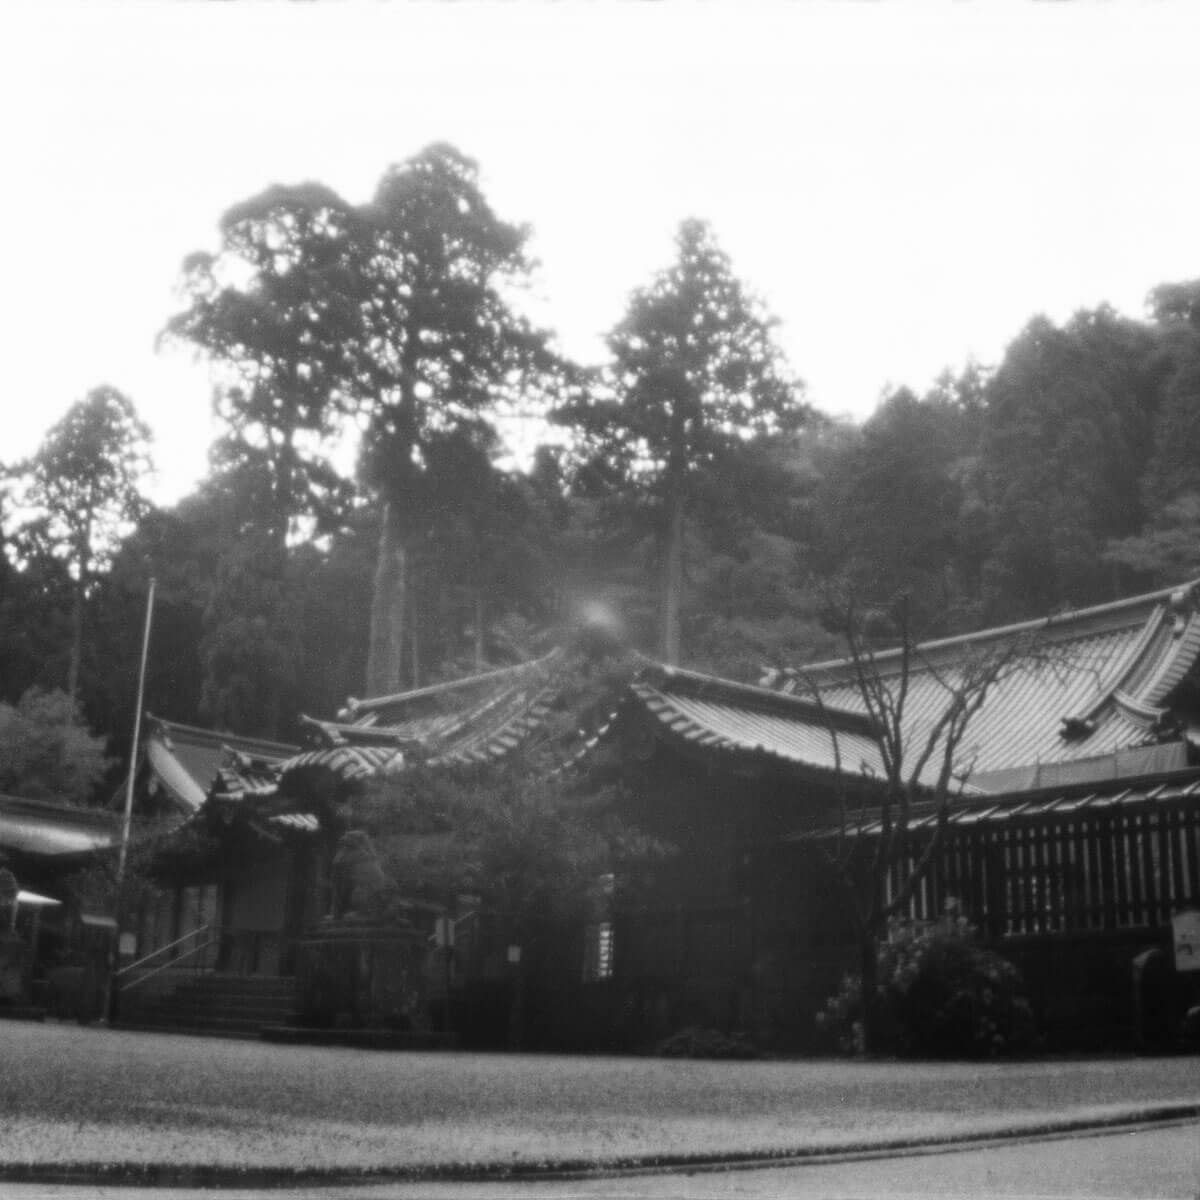 Japan - Ilford FP4 125 iso - Pinhole Photography - 2018 - 5